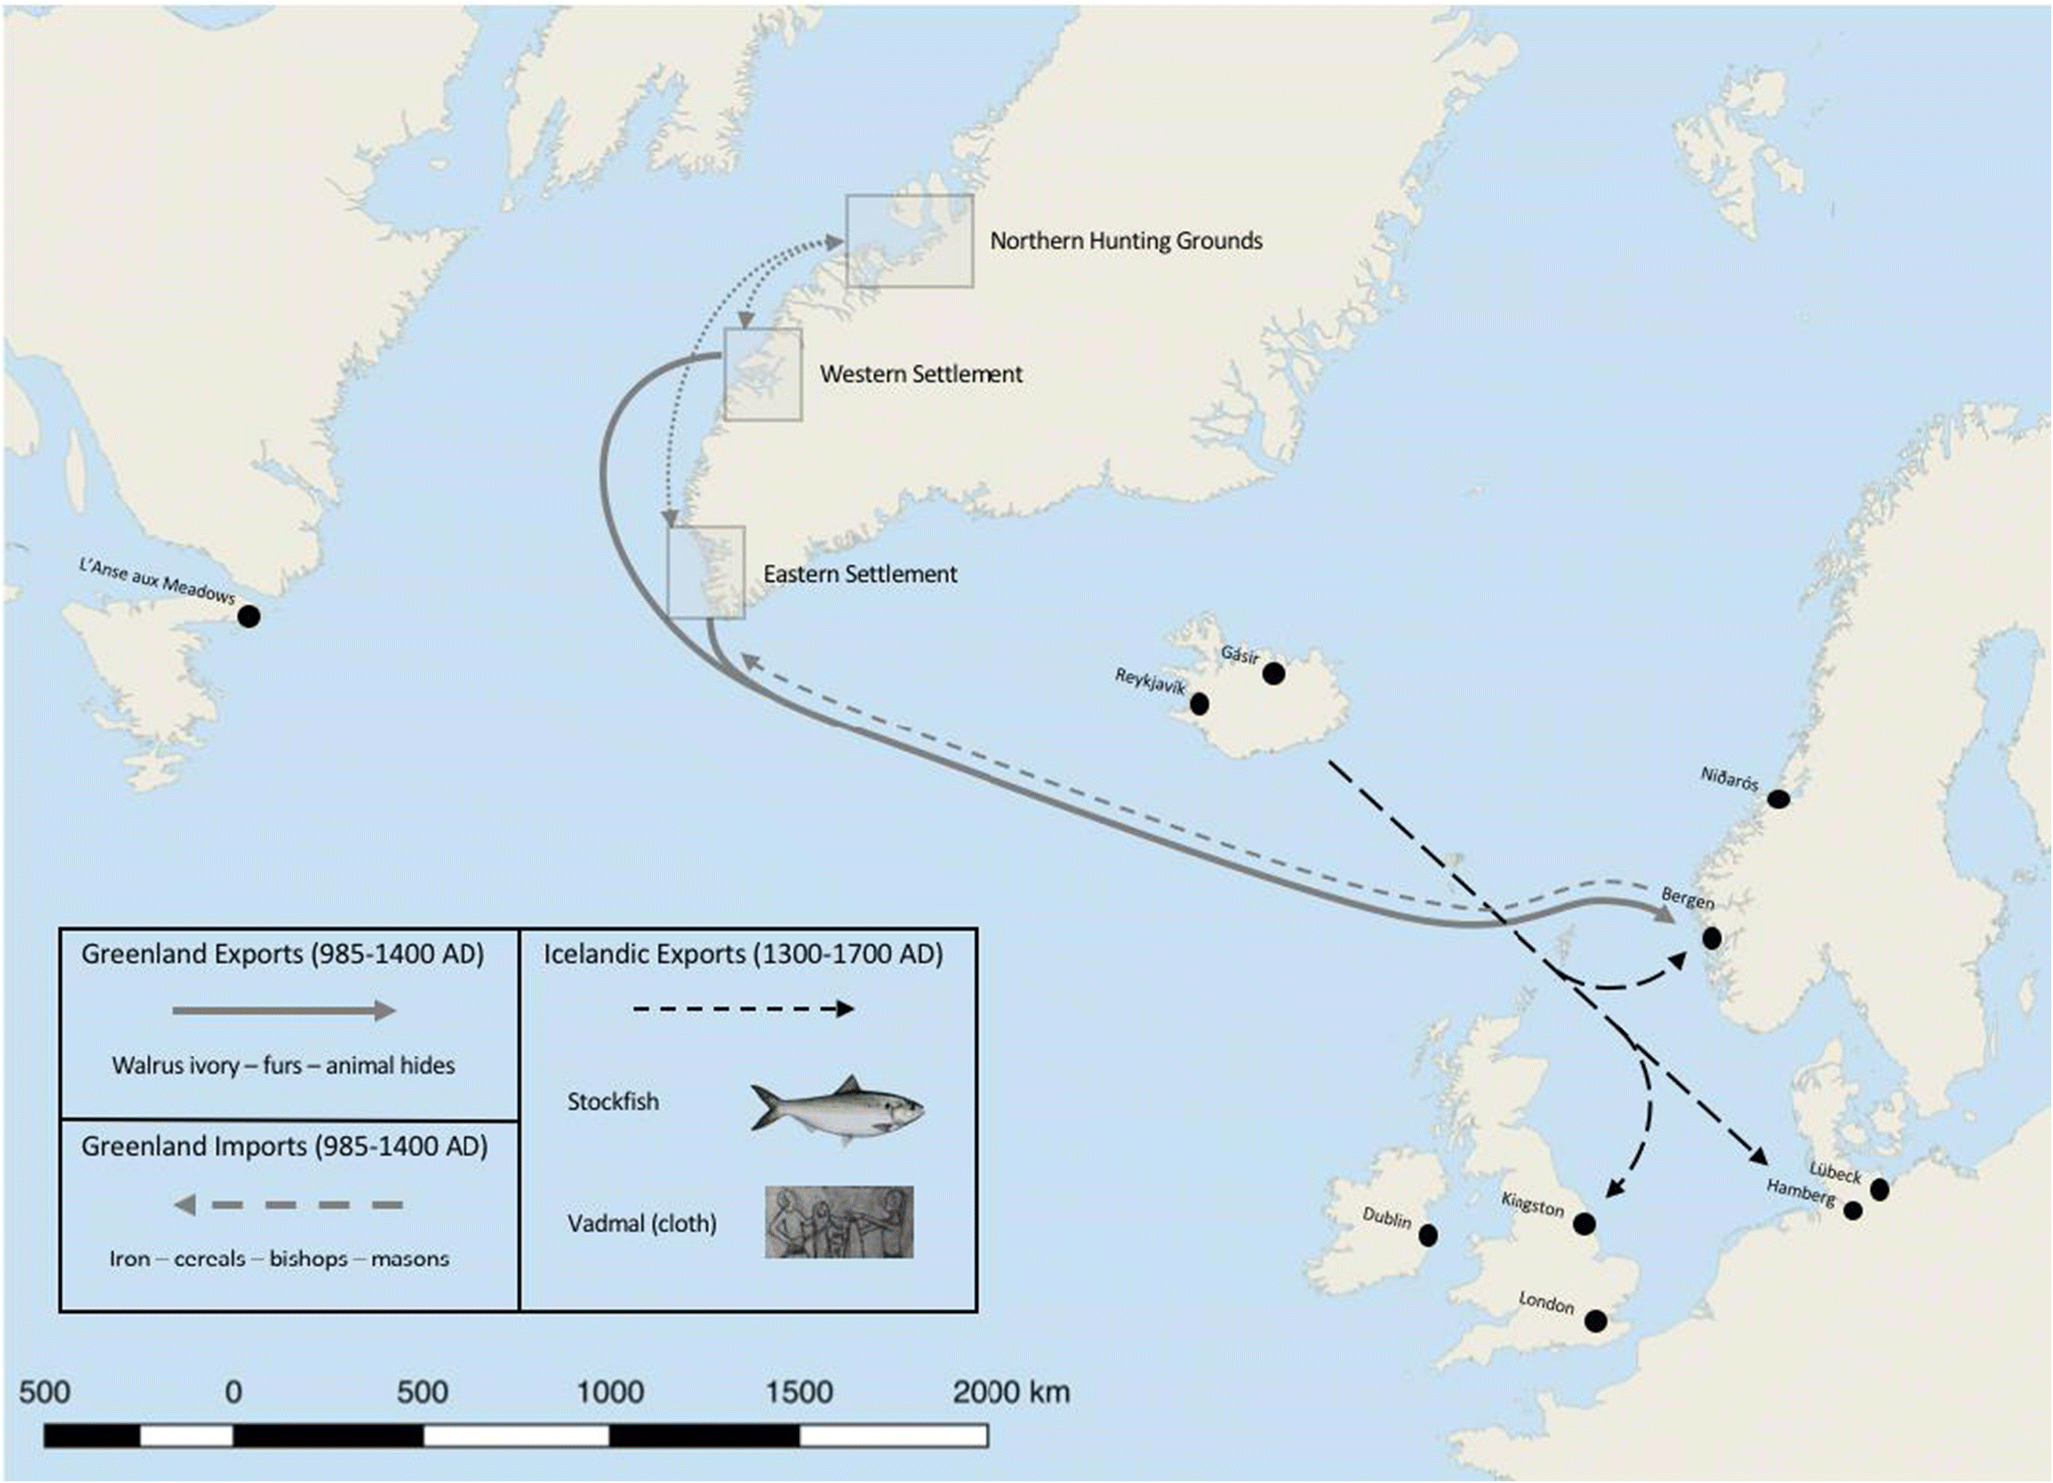 Disequilibrium, Adaptation, and the Norse Settlement of Greenland